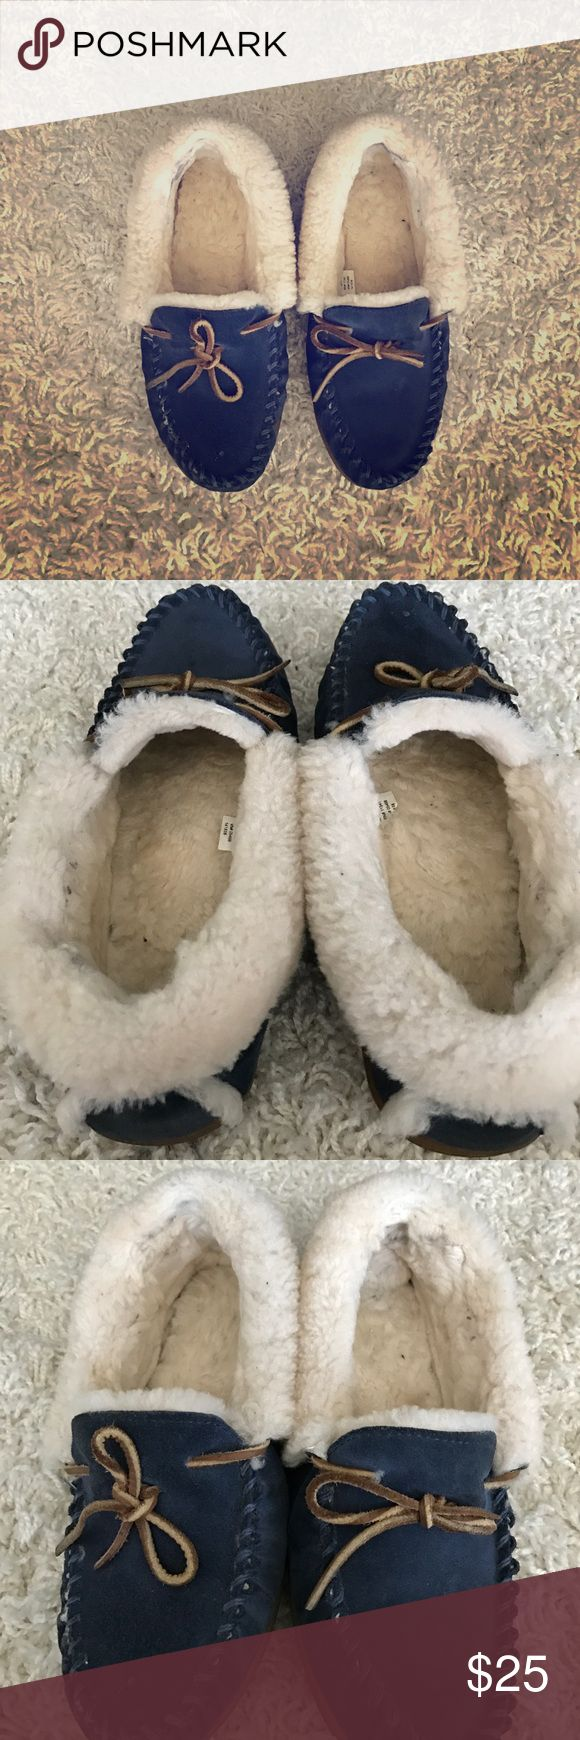 LL Bean Moccs! In excellent condition. The shearling is still soft and fluffy, the treads have not been worn and the outside suede leather is soft and without imperfection! ll bean  Shoes Moccasins